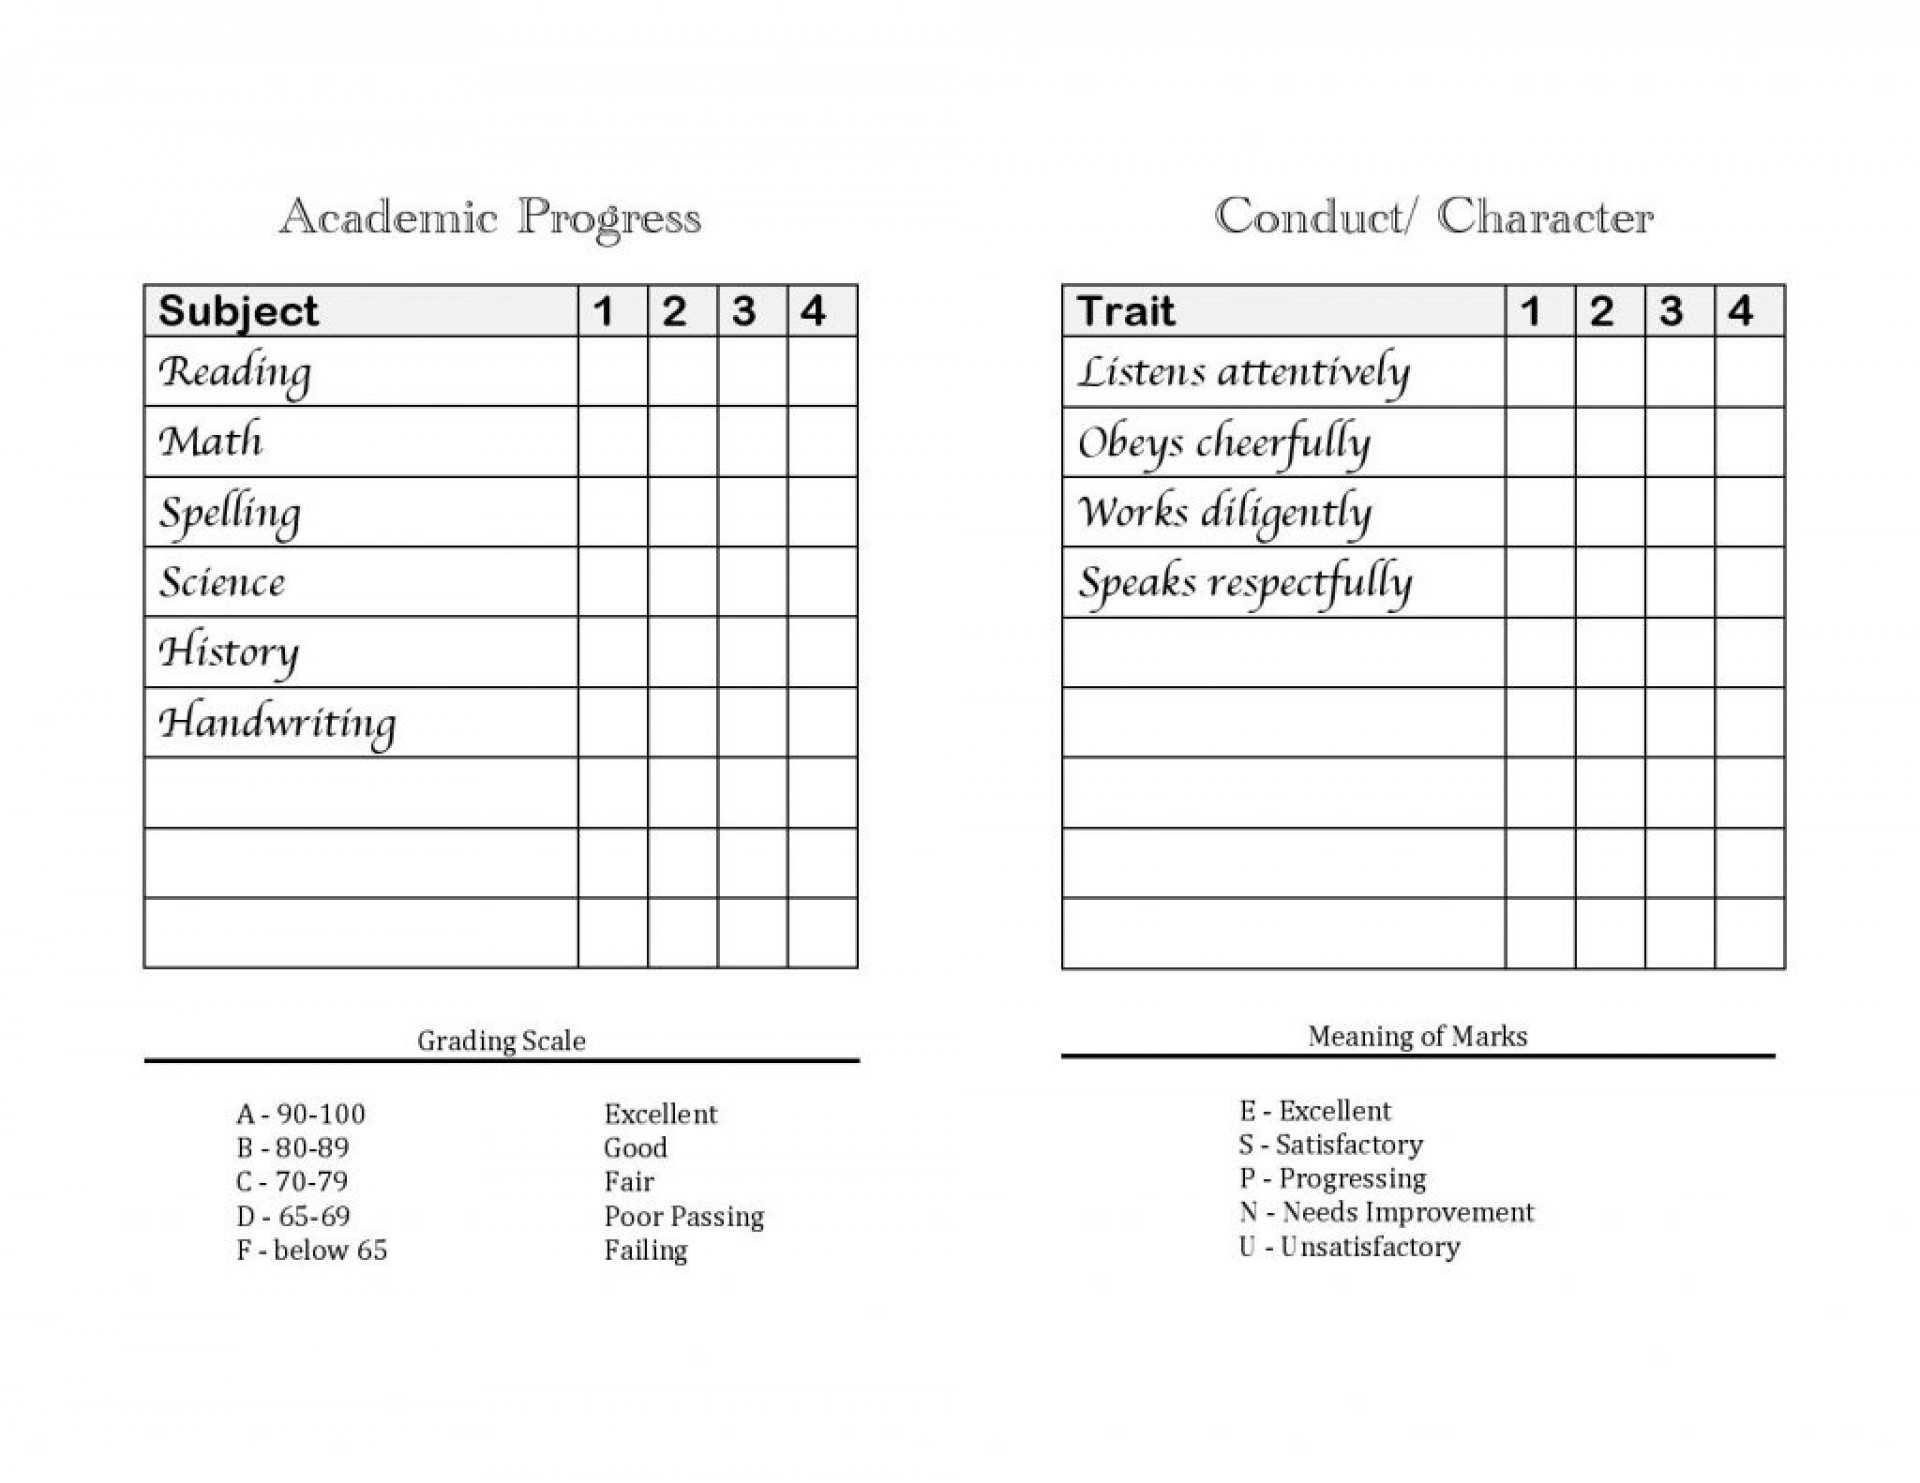 036 Free Download Report Card Template For Homeschoolers Throughout Character Report Card Template